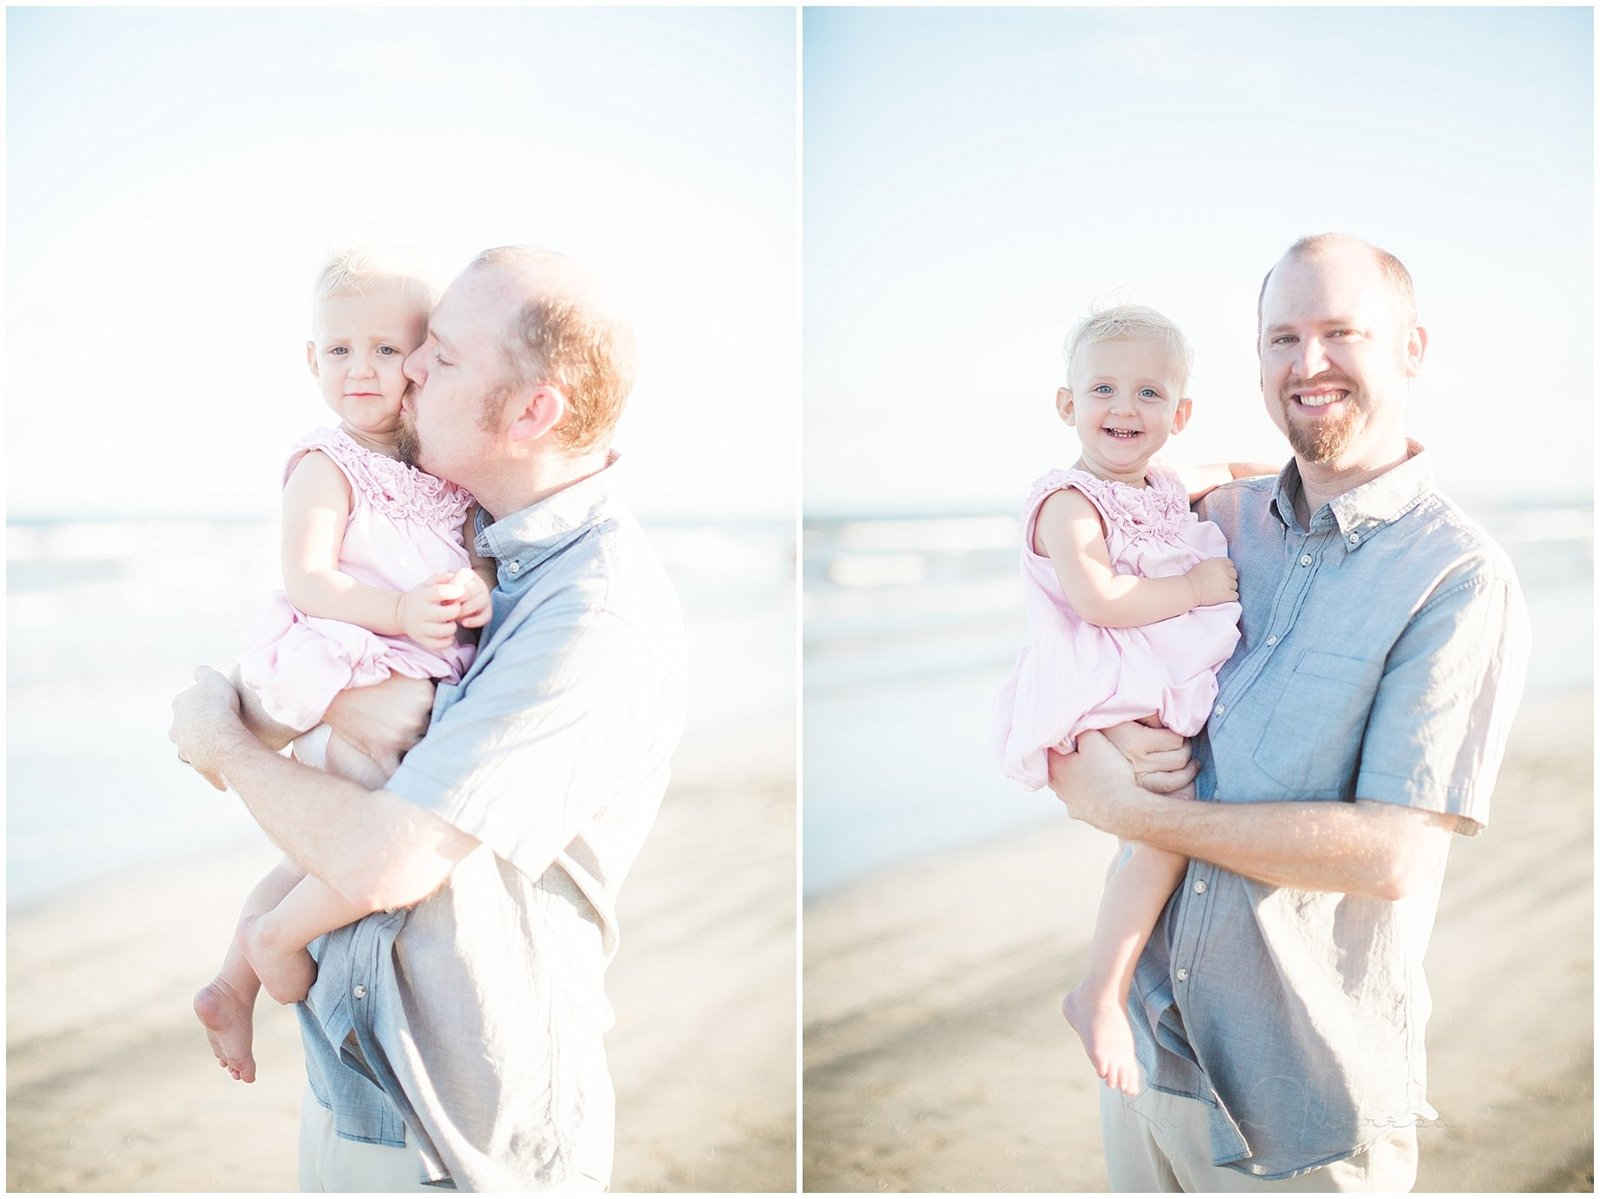 Karen Theresa Photography - Galveston Baytown Family Portrait Photographer_0308